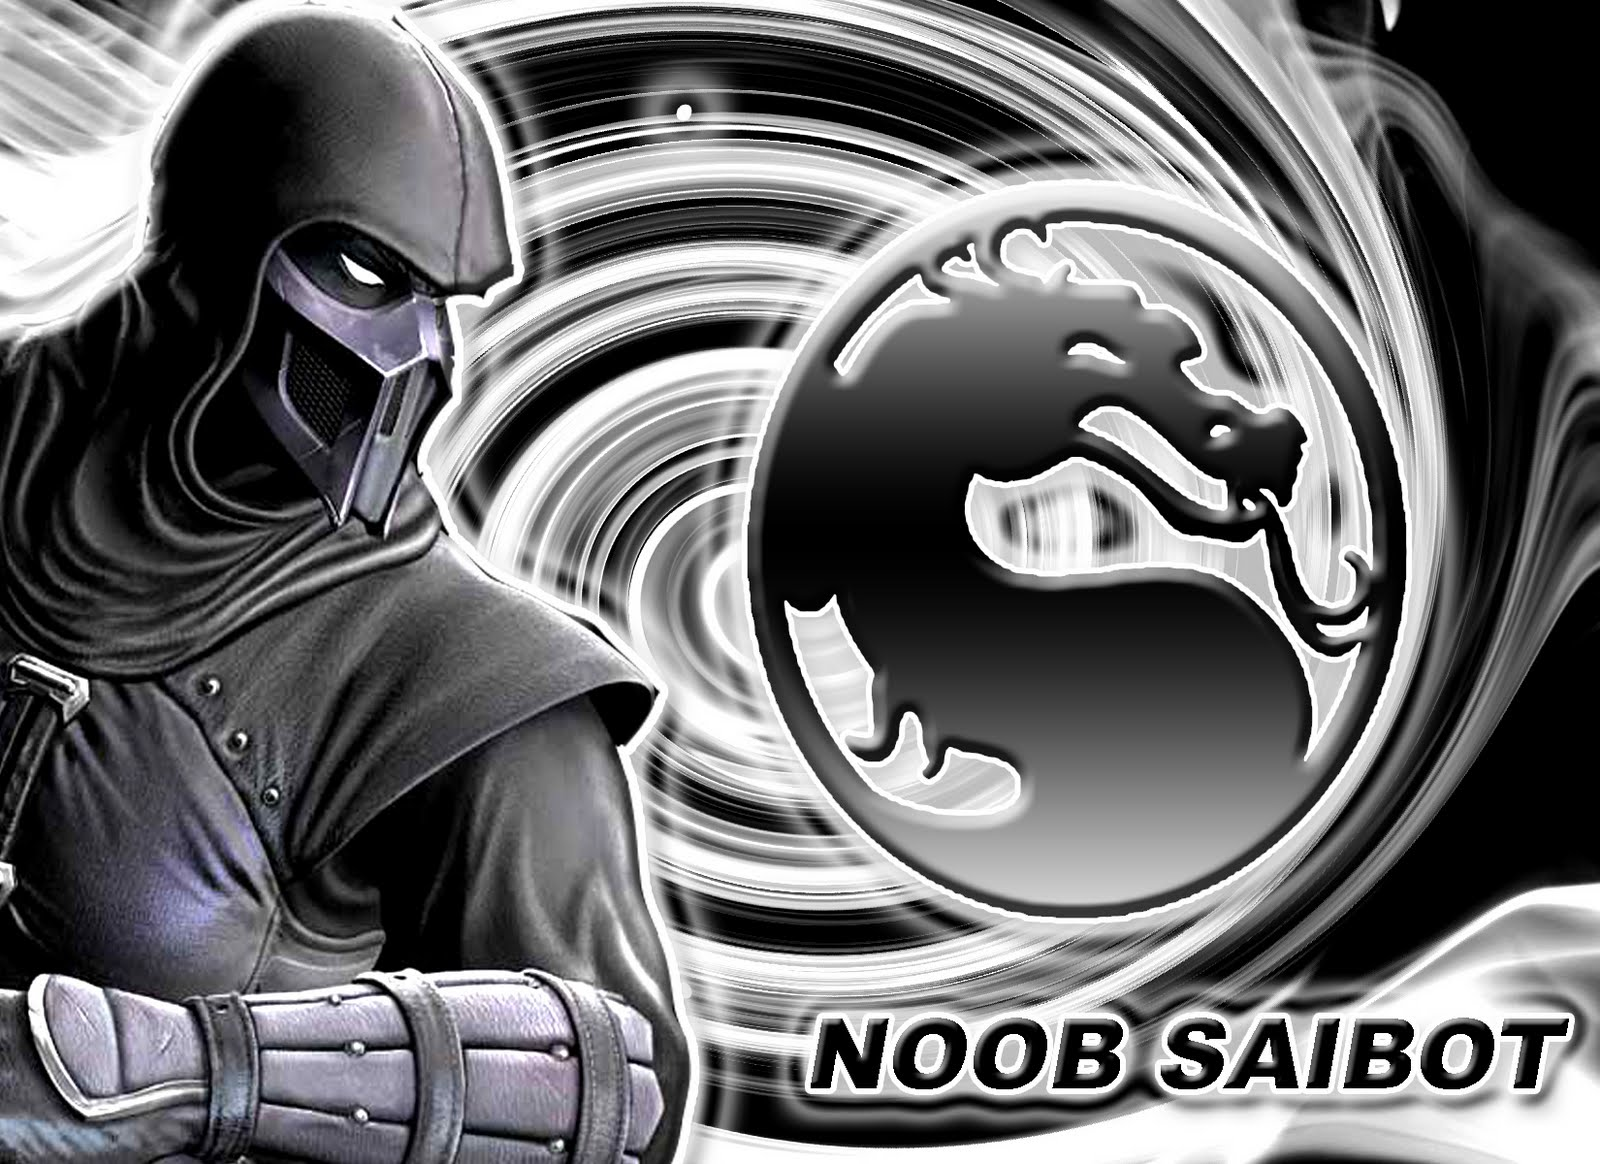 Mortal Kombat 9 Noob Saibot MK9 2011 Wallpaper